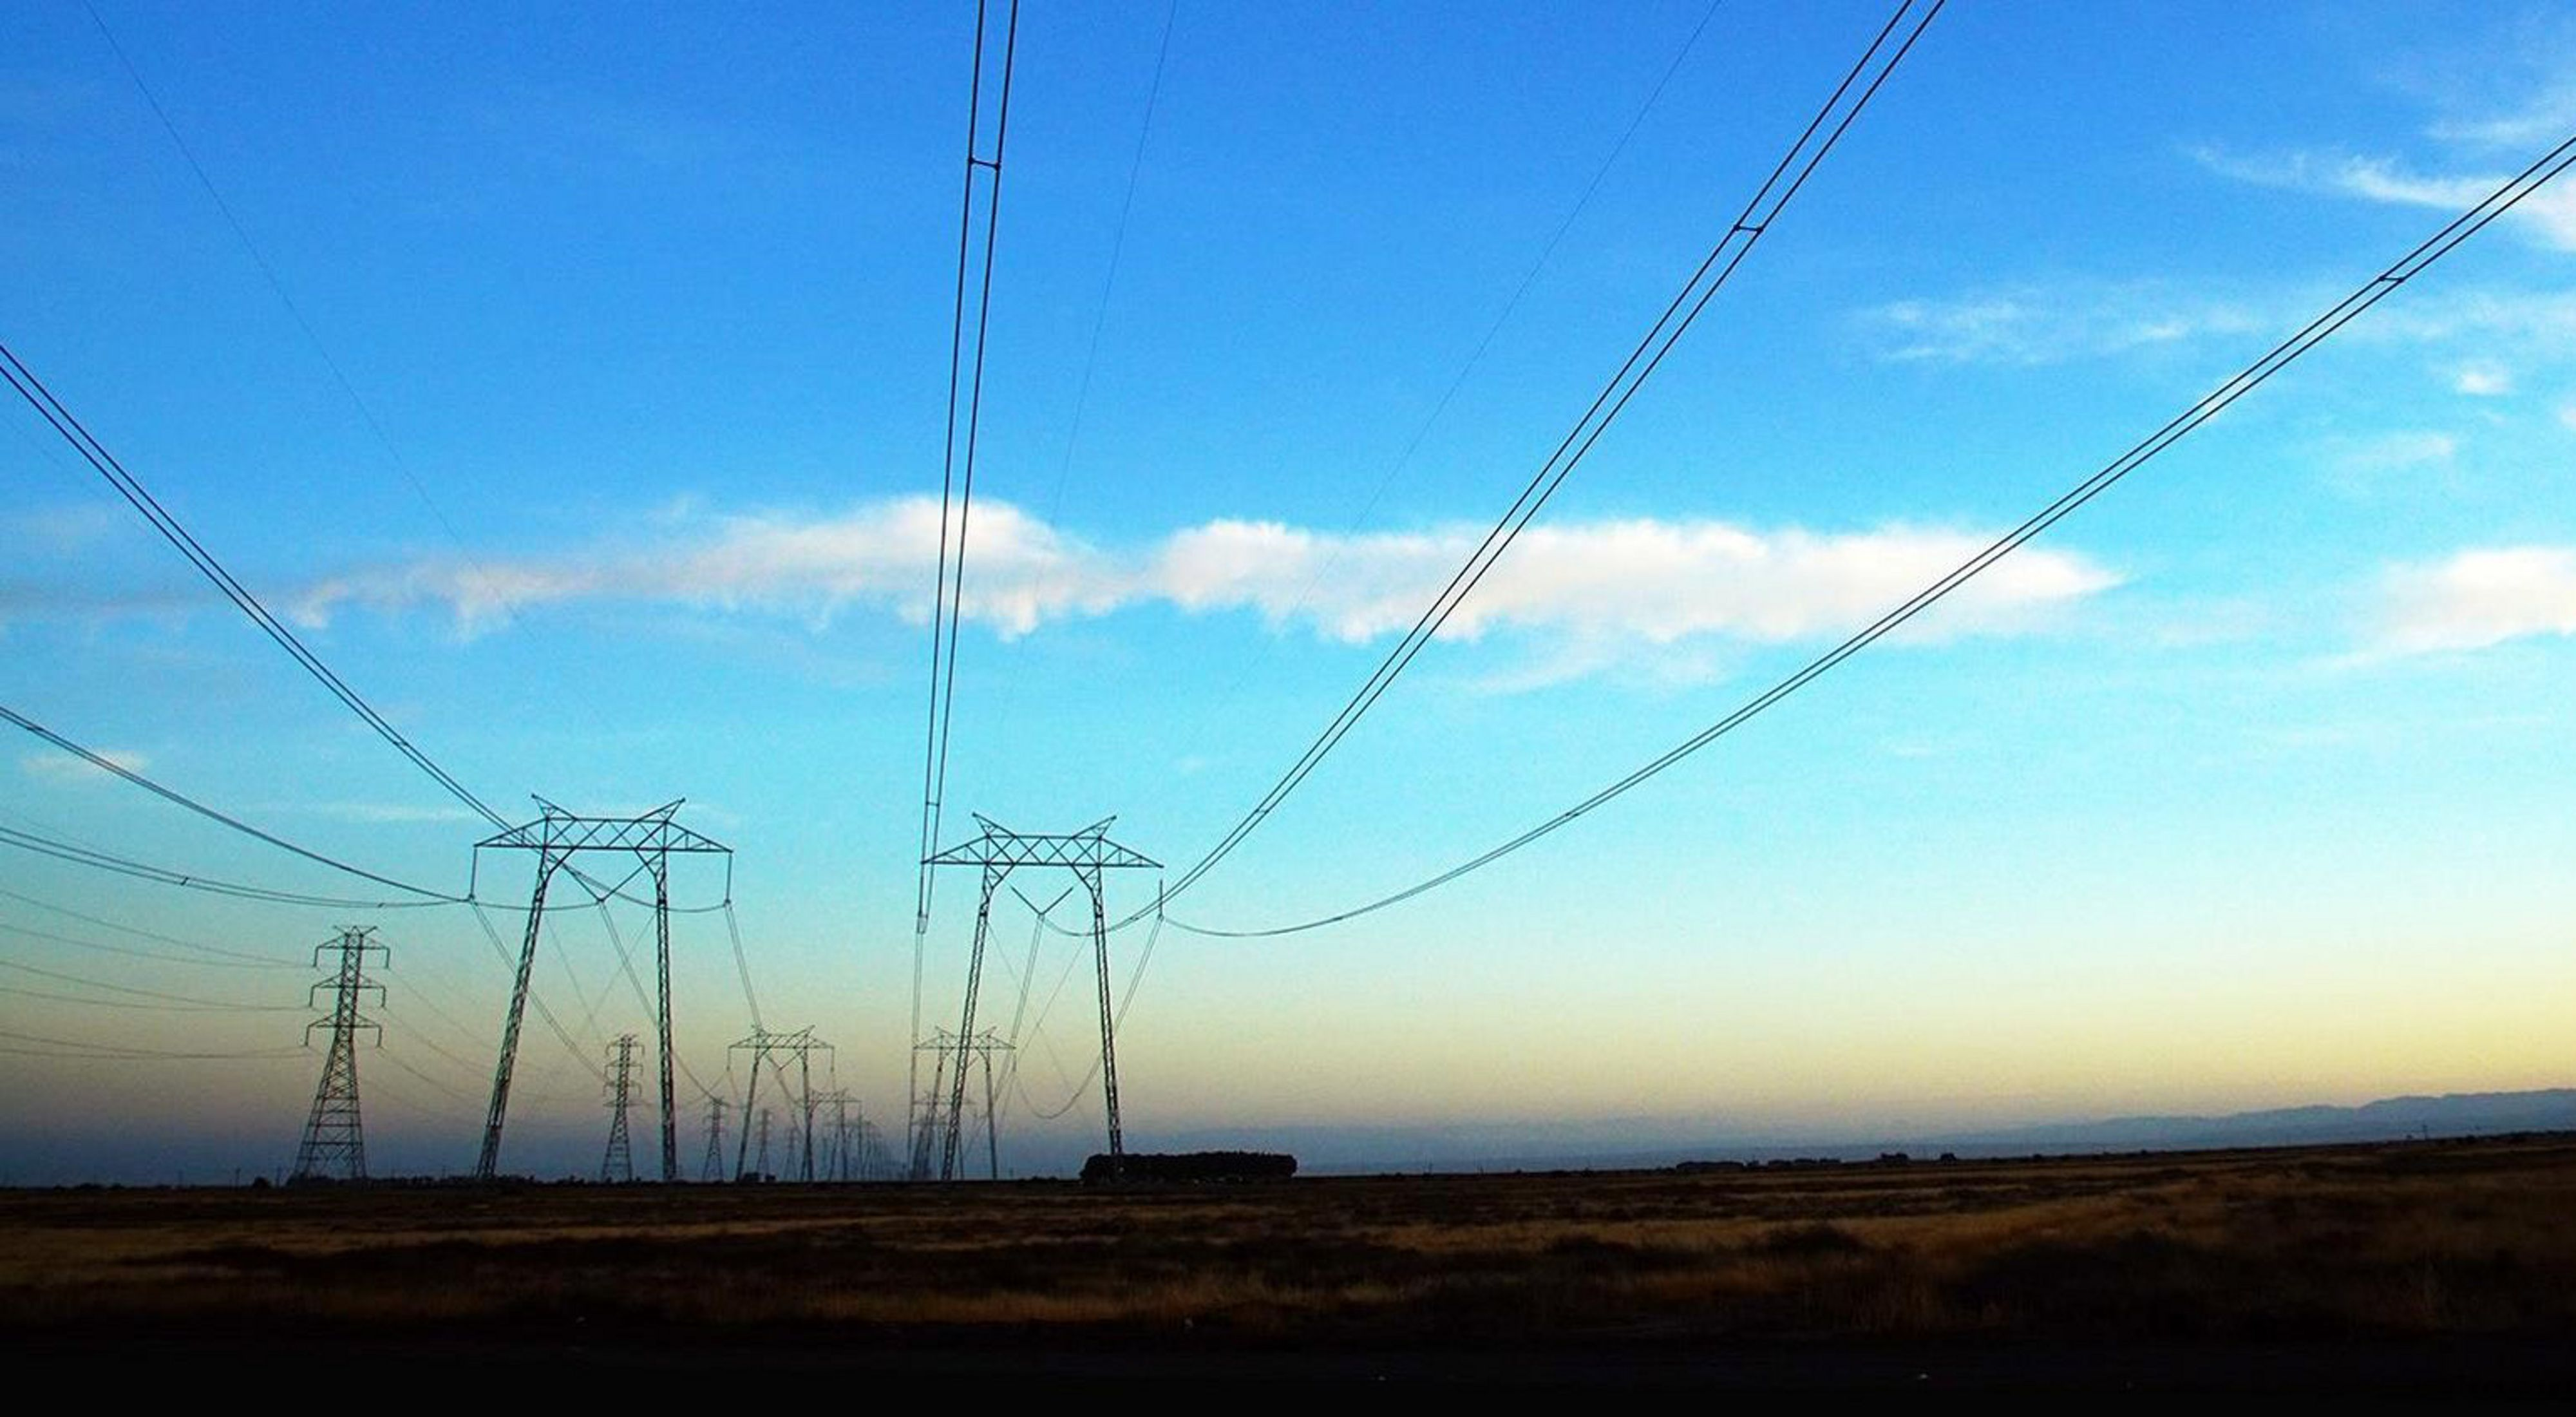 Transmission lines in the San Joaquin Valley